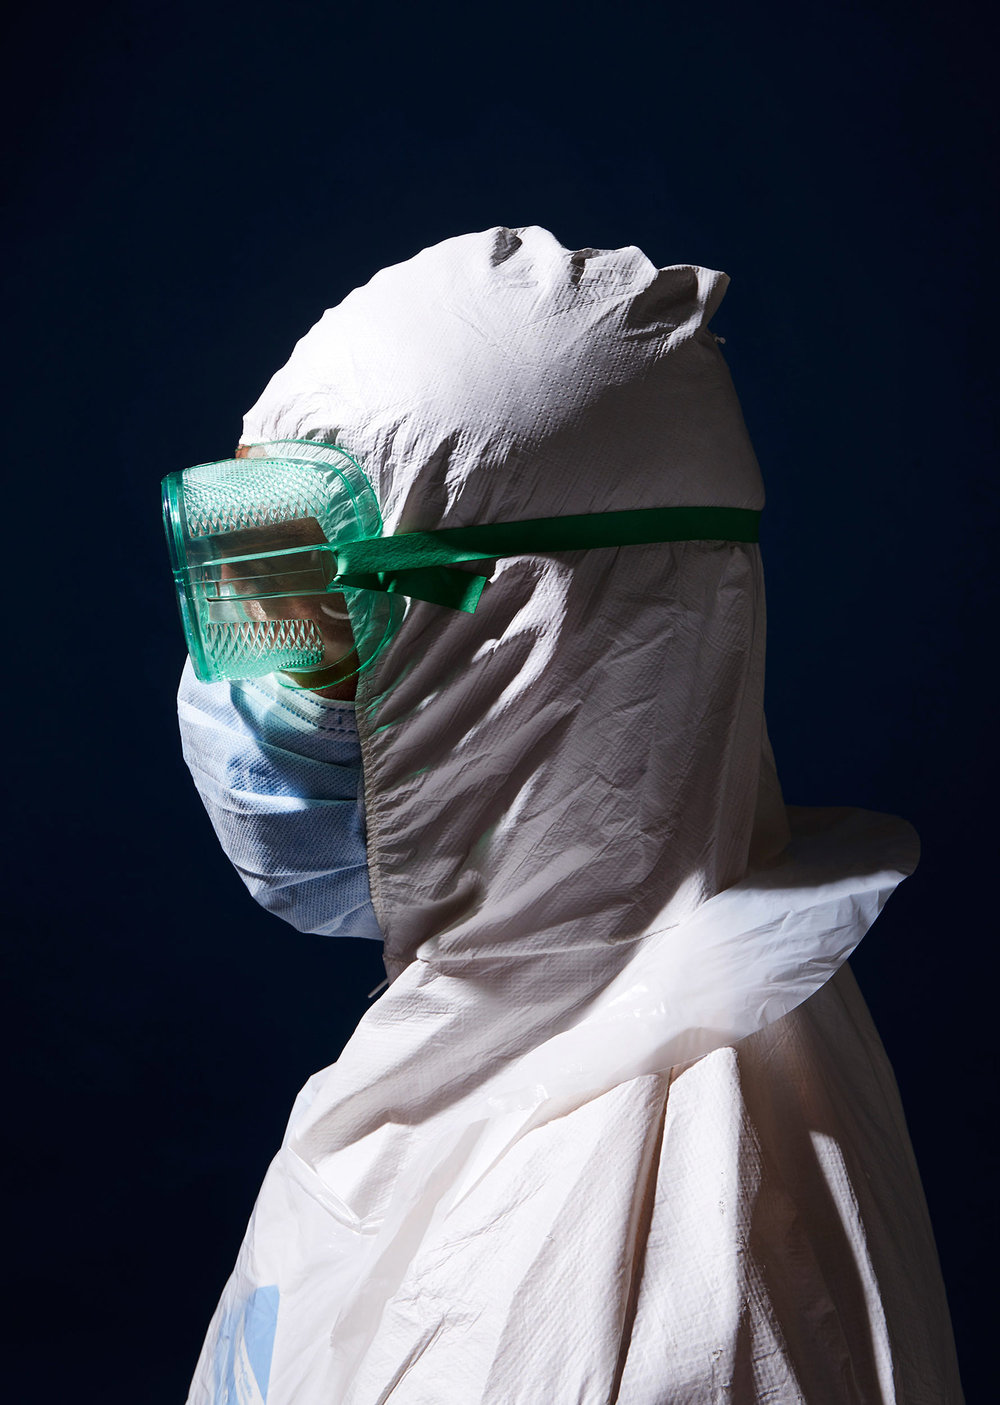 CDC staff member wearing the protective suiting needed to treat ebola infected patients